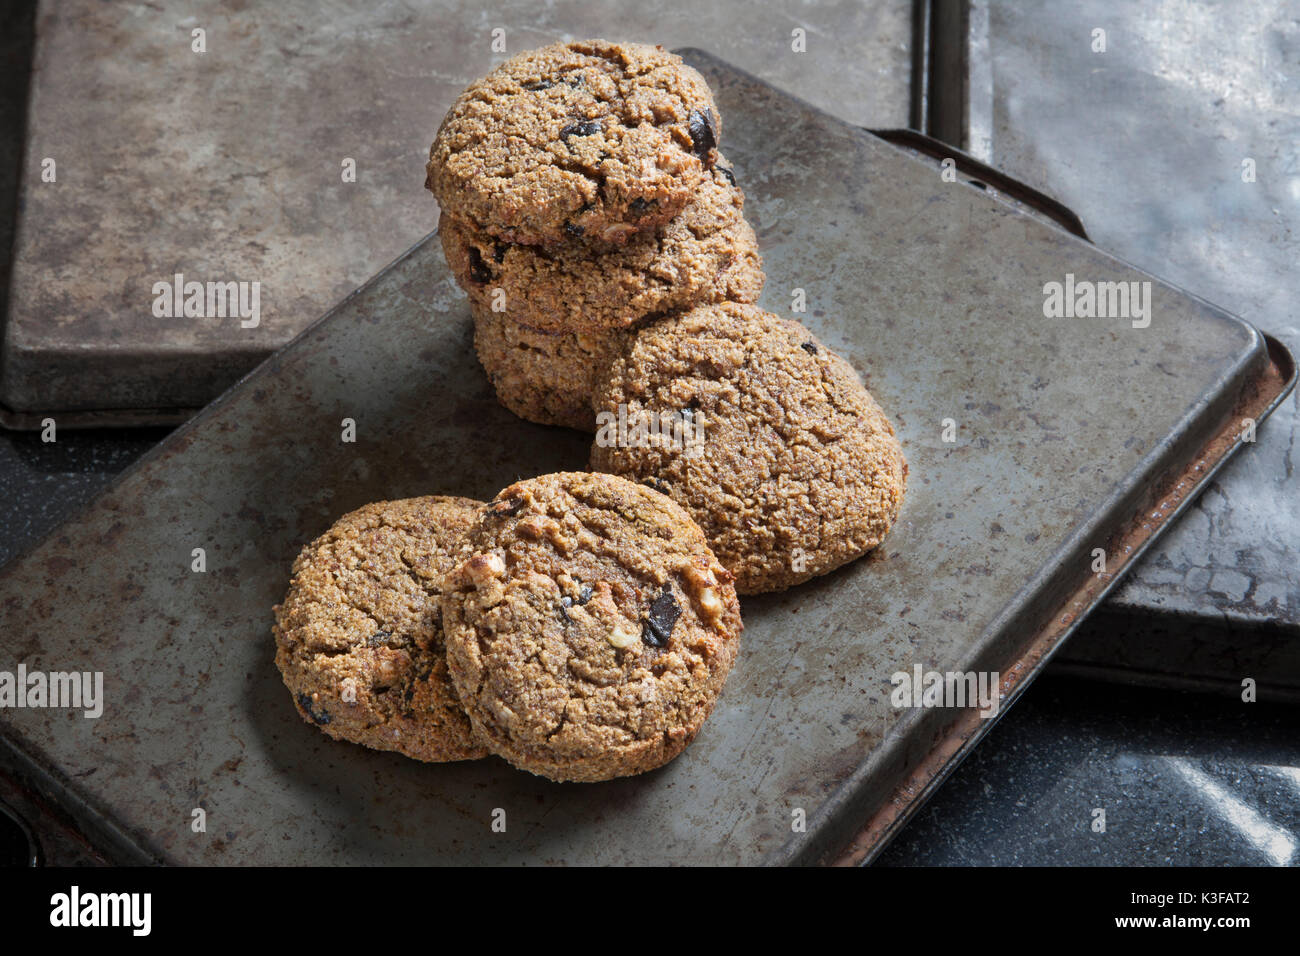 Gluten-Free Pumpkin Spice Cookies with Walnuts and Dark Chocolate Stock Photo